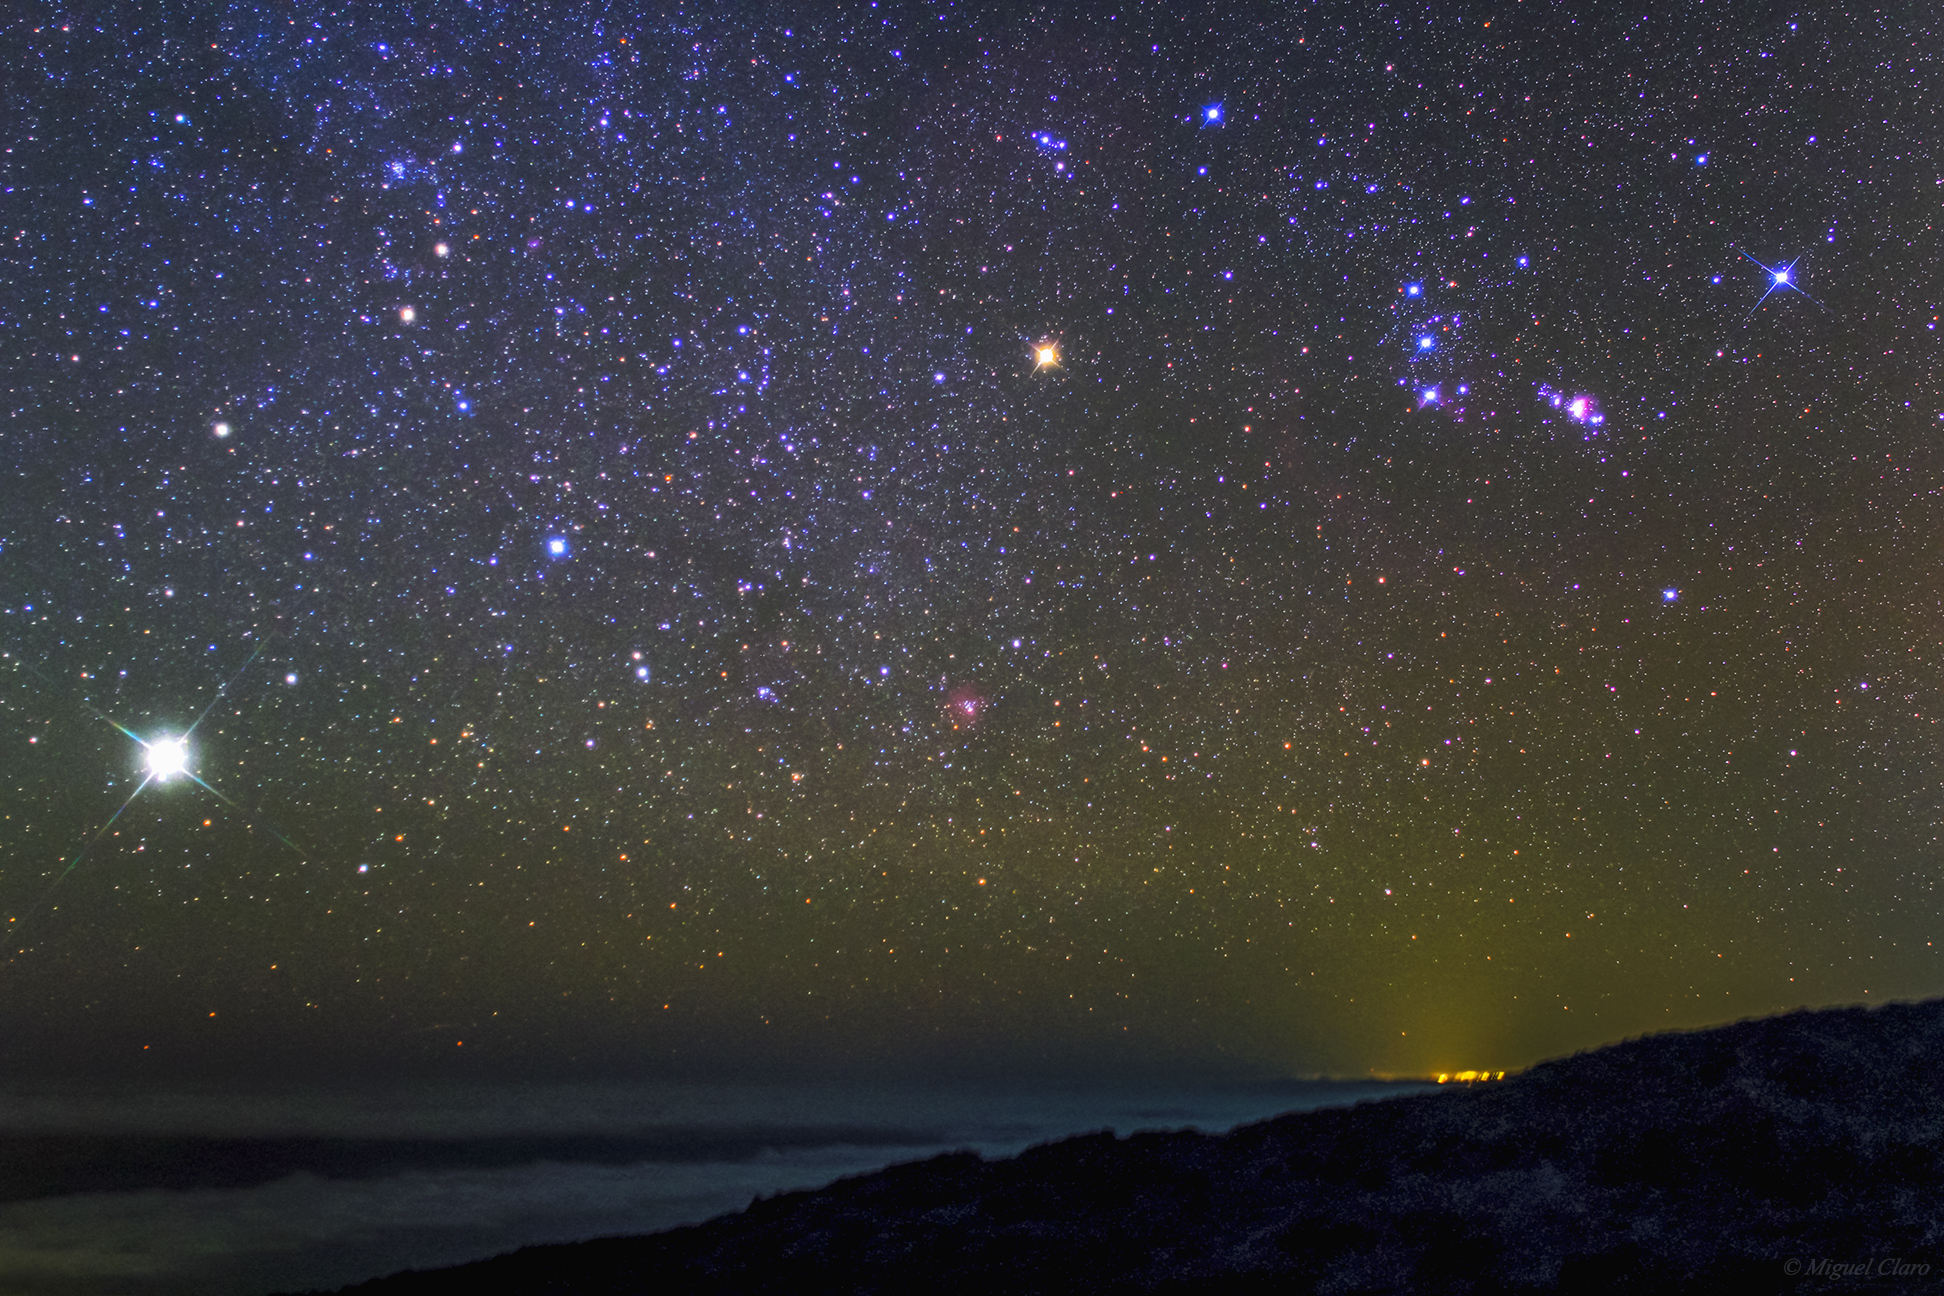 Jupiter and Orion Shine Over Canary Islands in Dazzling Night Sky Photo